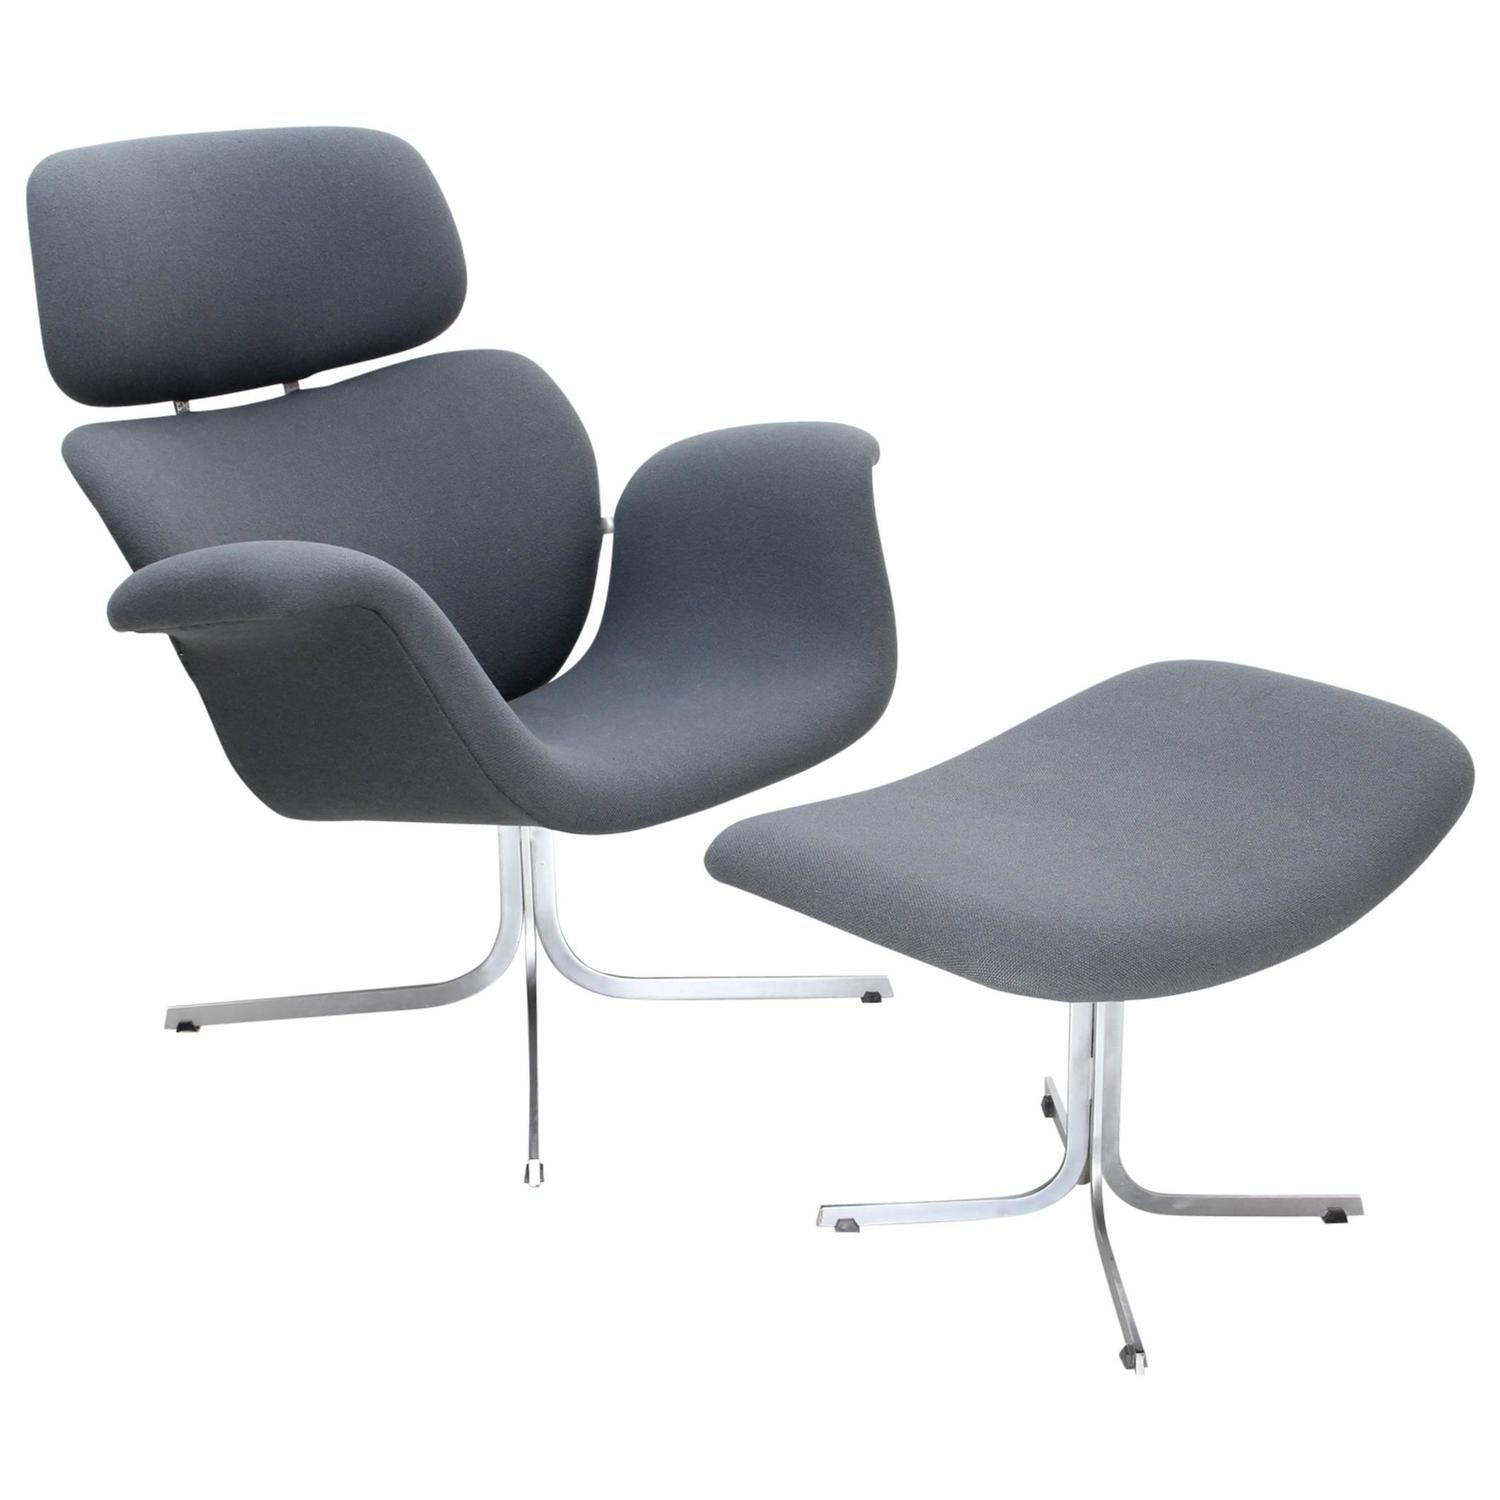 1965 Big Tulip Lounge Chair With Ottoman By Pierre Paulin